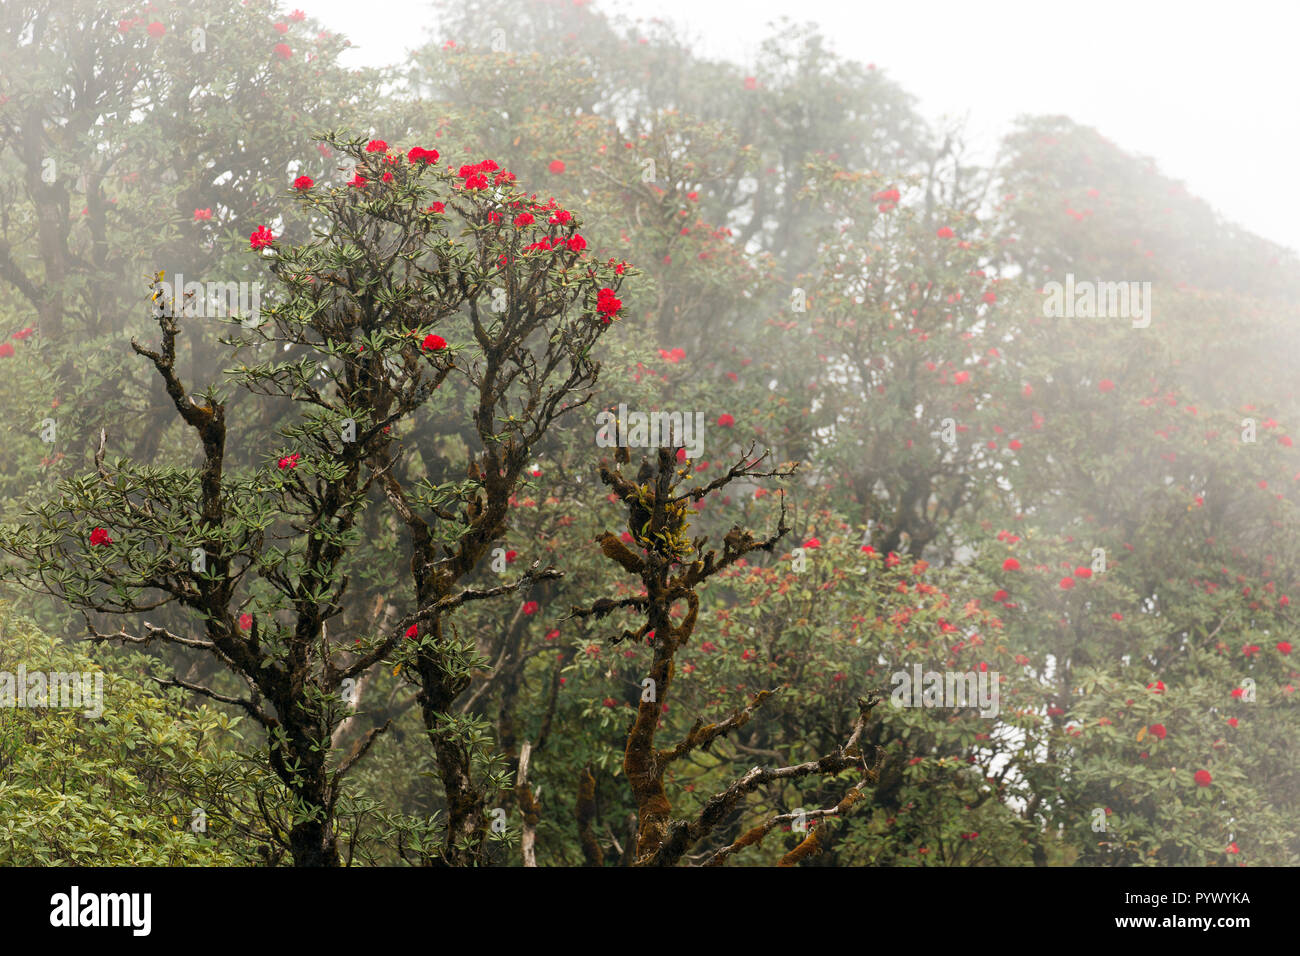 Rhododendron Arboreum blossom in a foggy day at the Doi Inthanon national park, Thailand - Stock Image